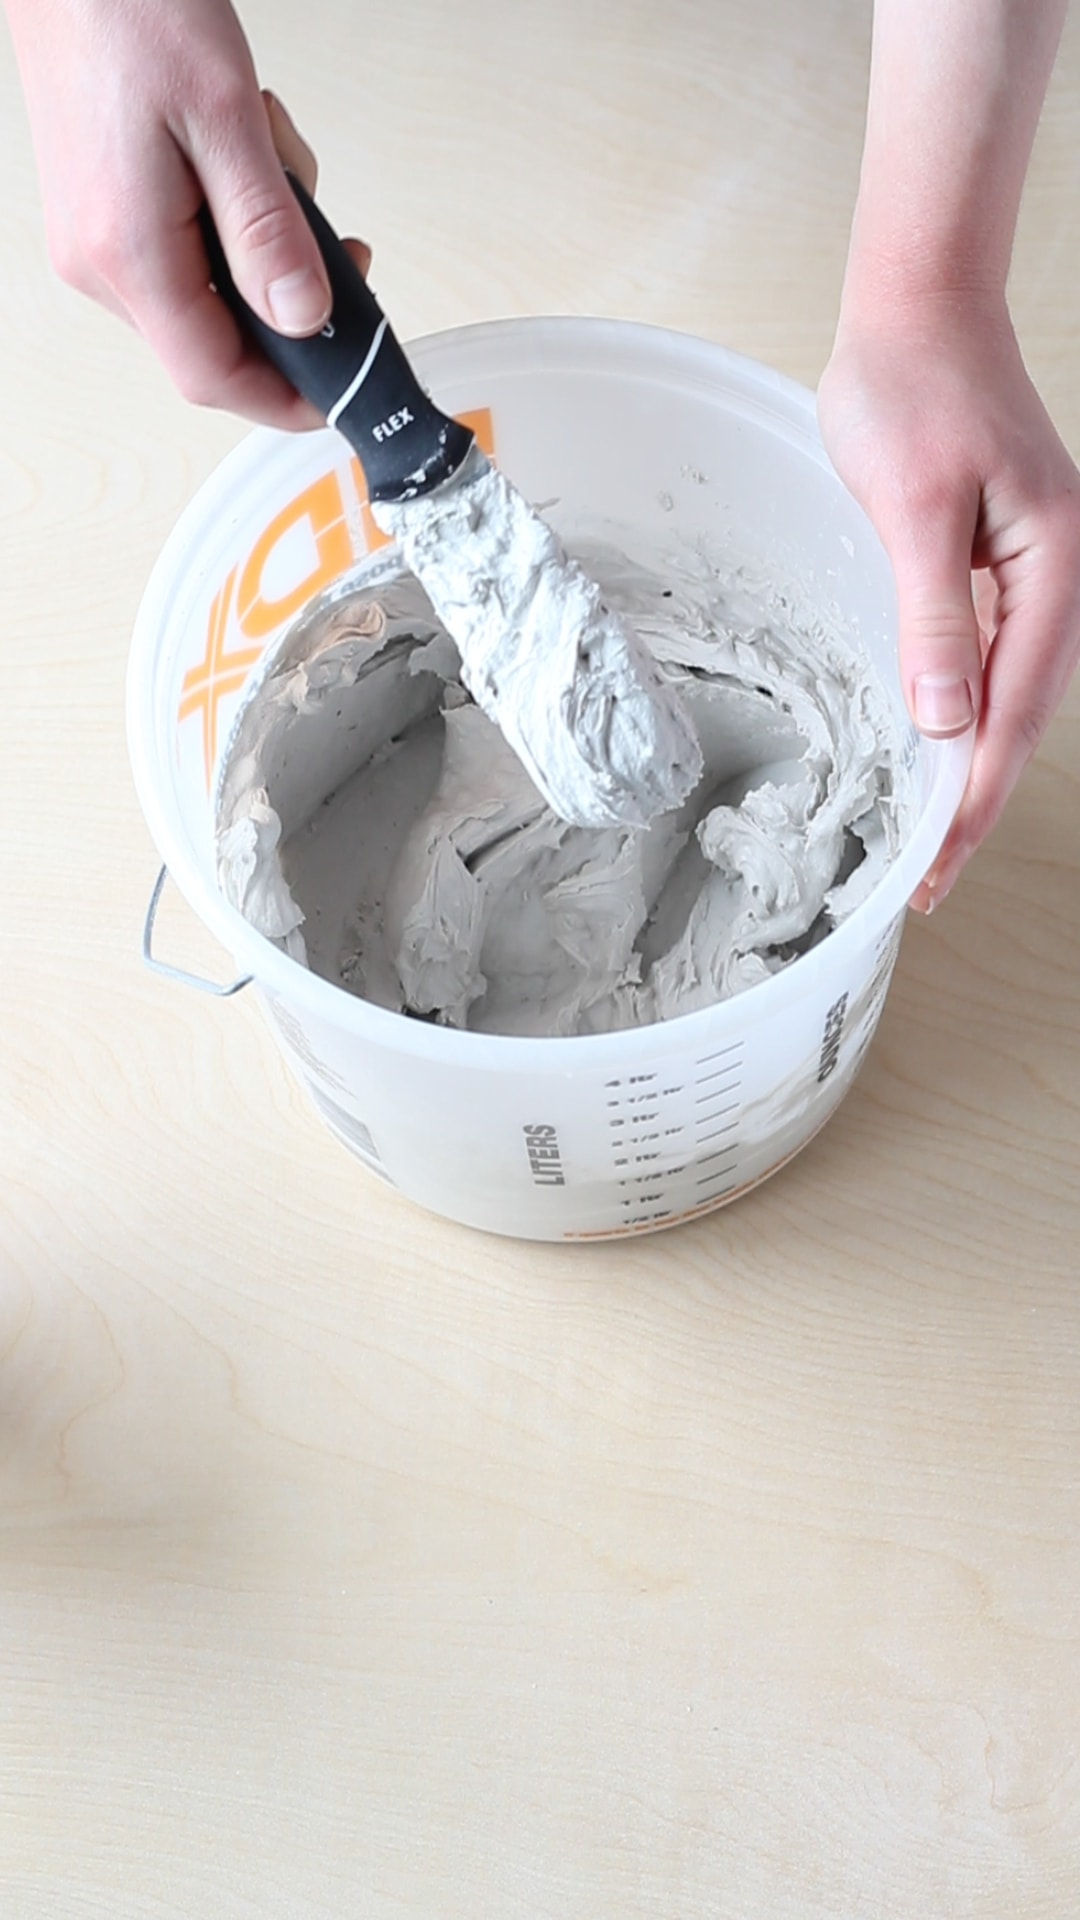 A bucket of mixed joint compound and a putty knife.